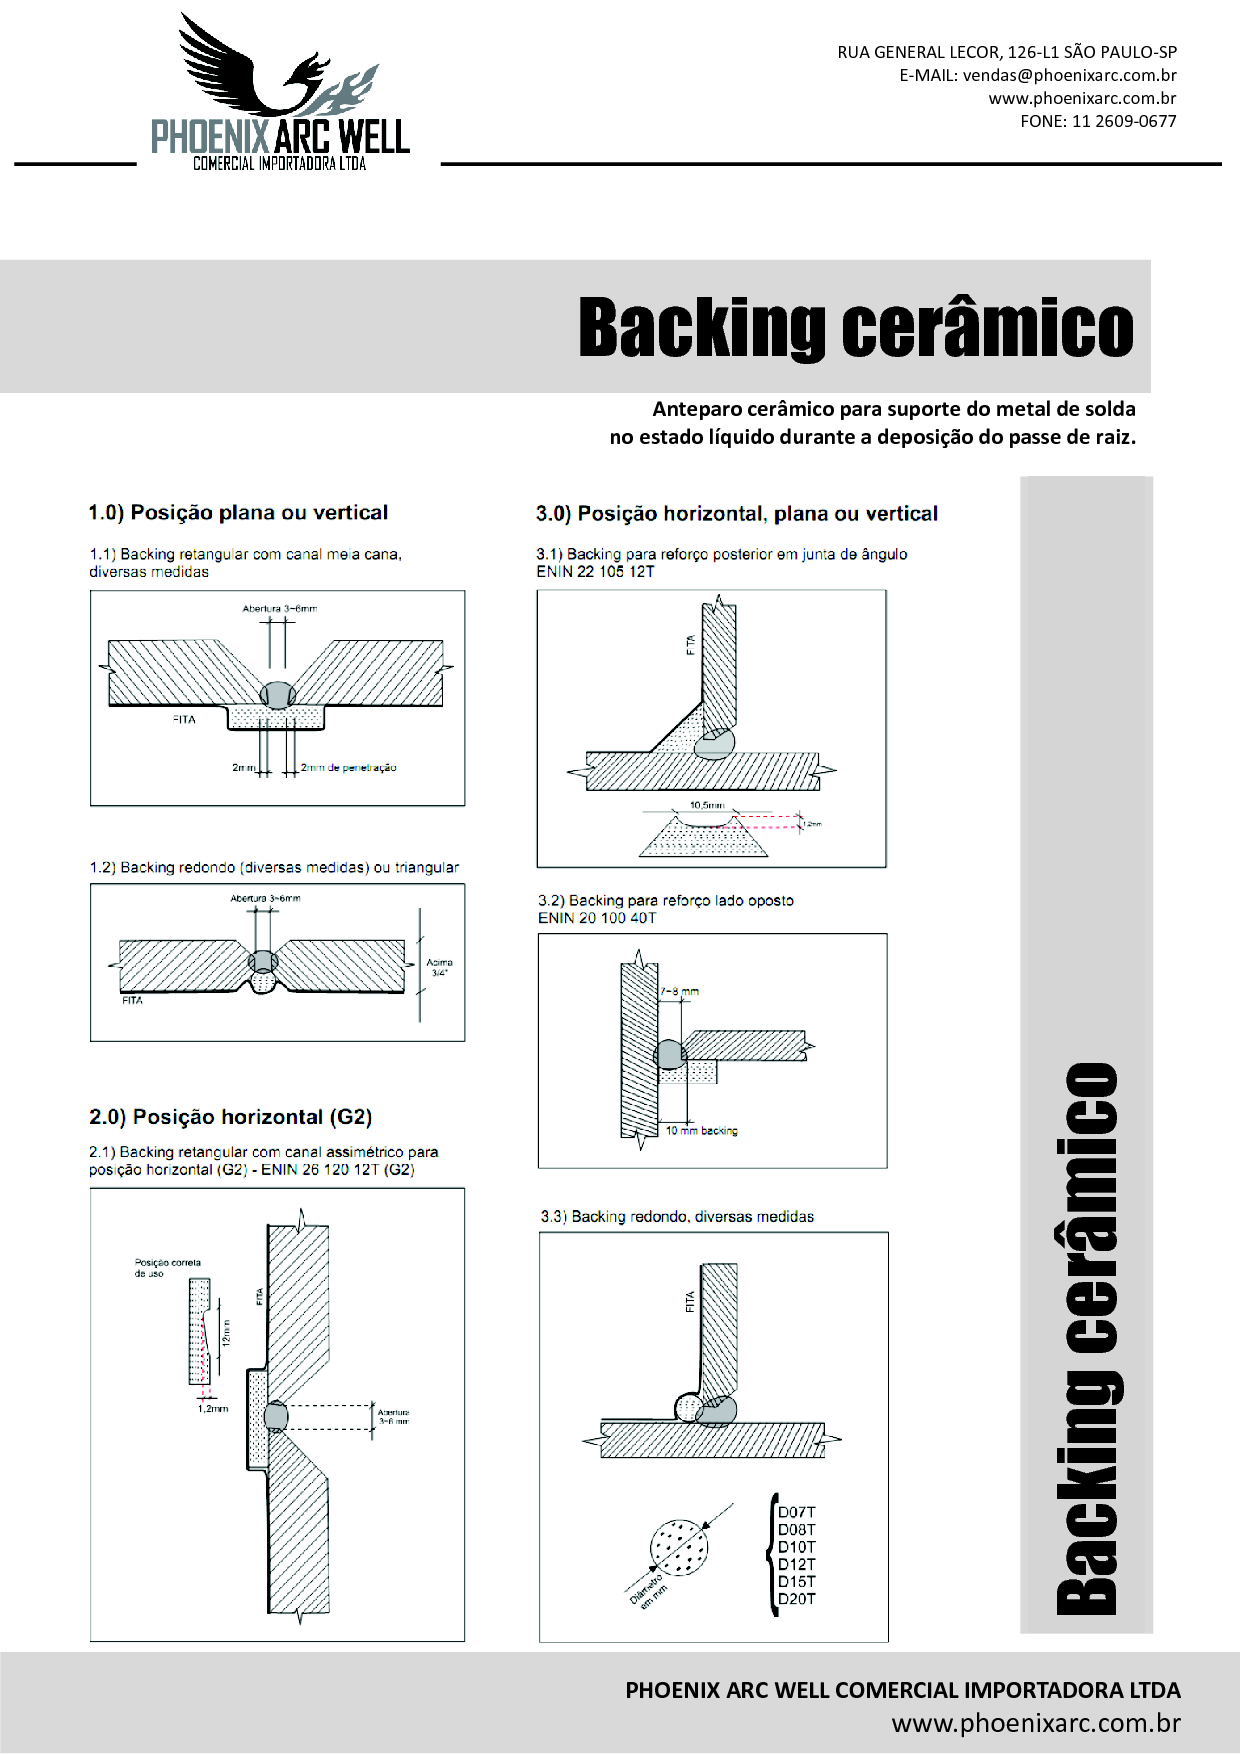 Backings cerâmicos1